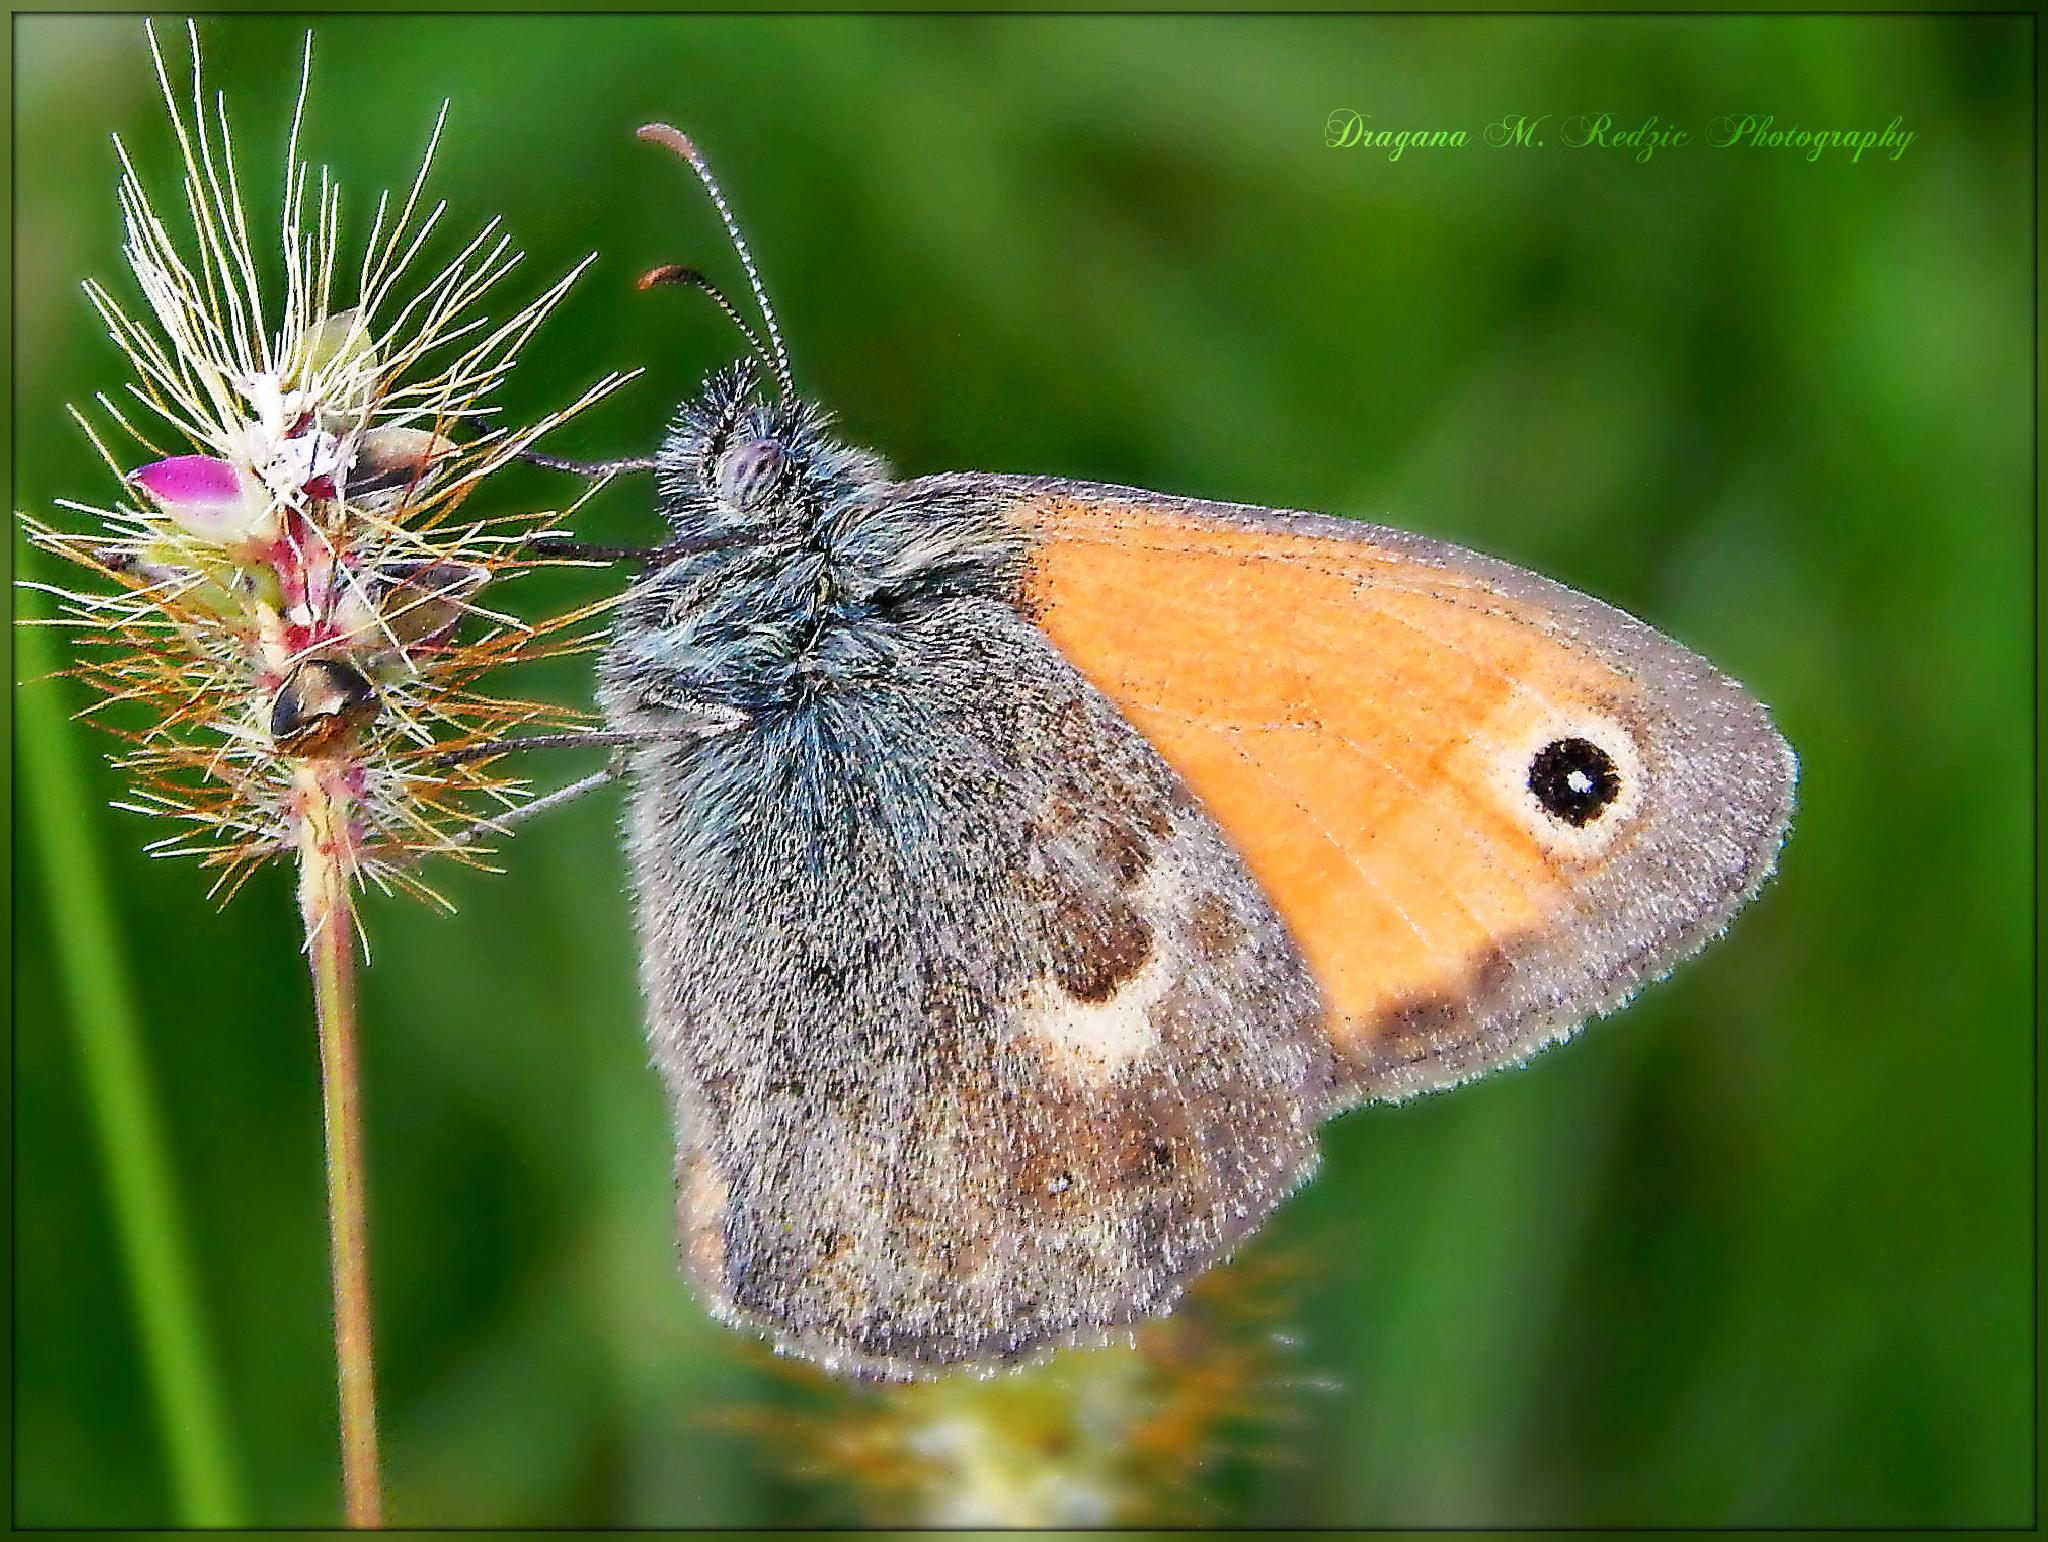 Coenonympha pamphilus L. by Драгана М. Реџић